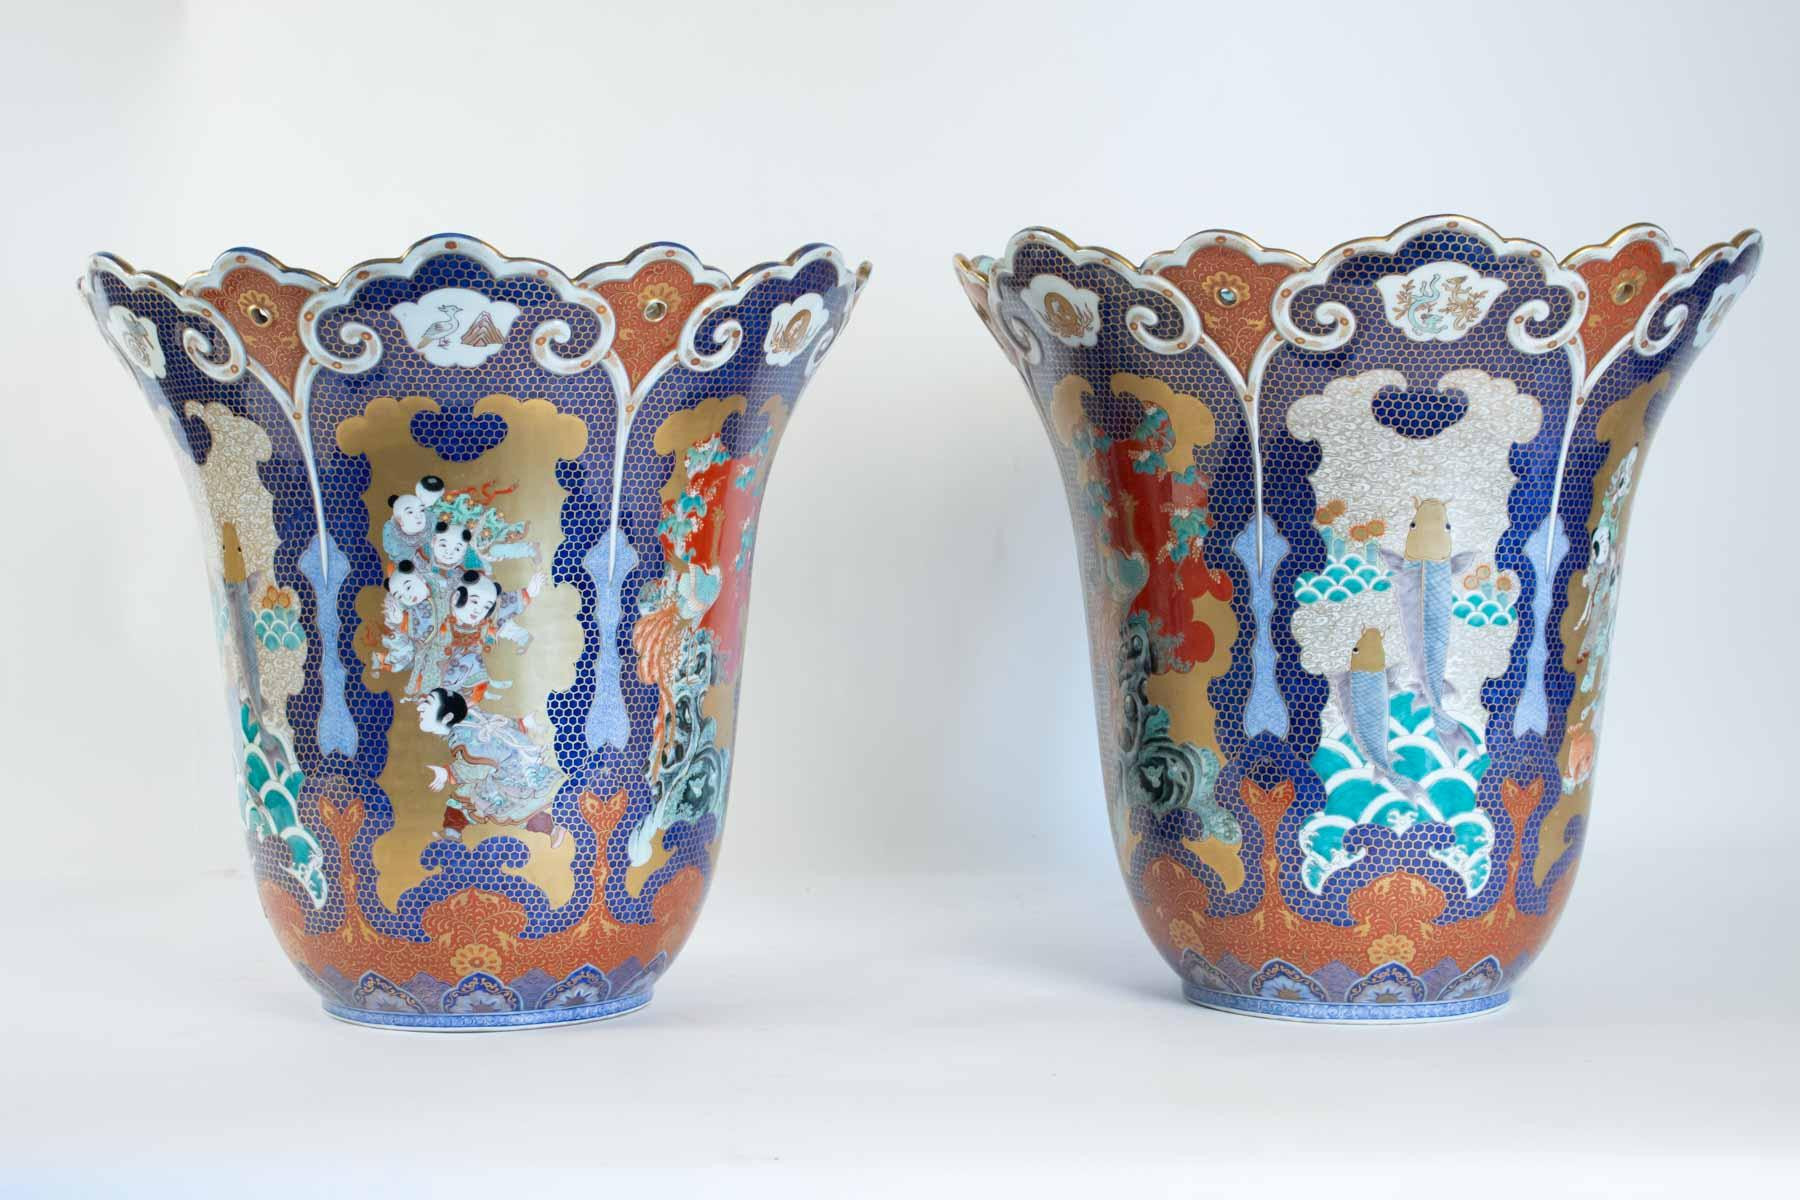 Ikebana Vase Pottery Of Important Pair Of Vases From Japan Signed Fuqukawa for Sale at 1stdibs for Img 7864 Master